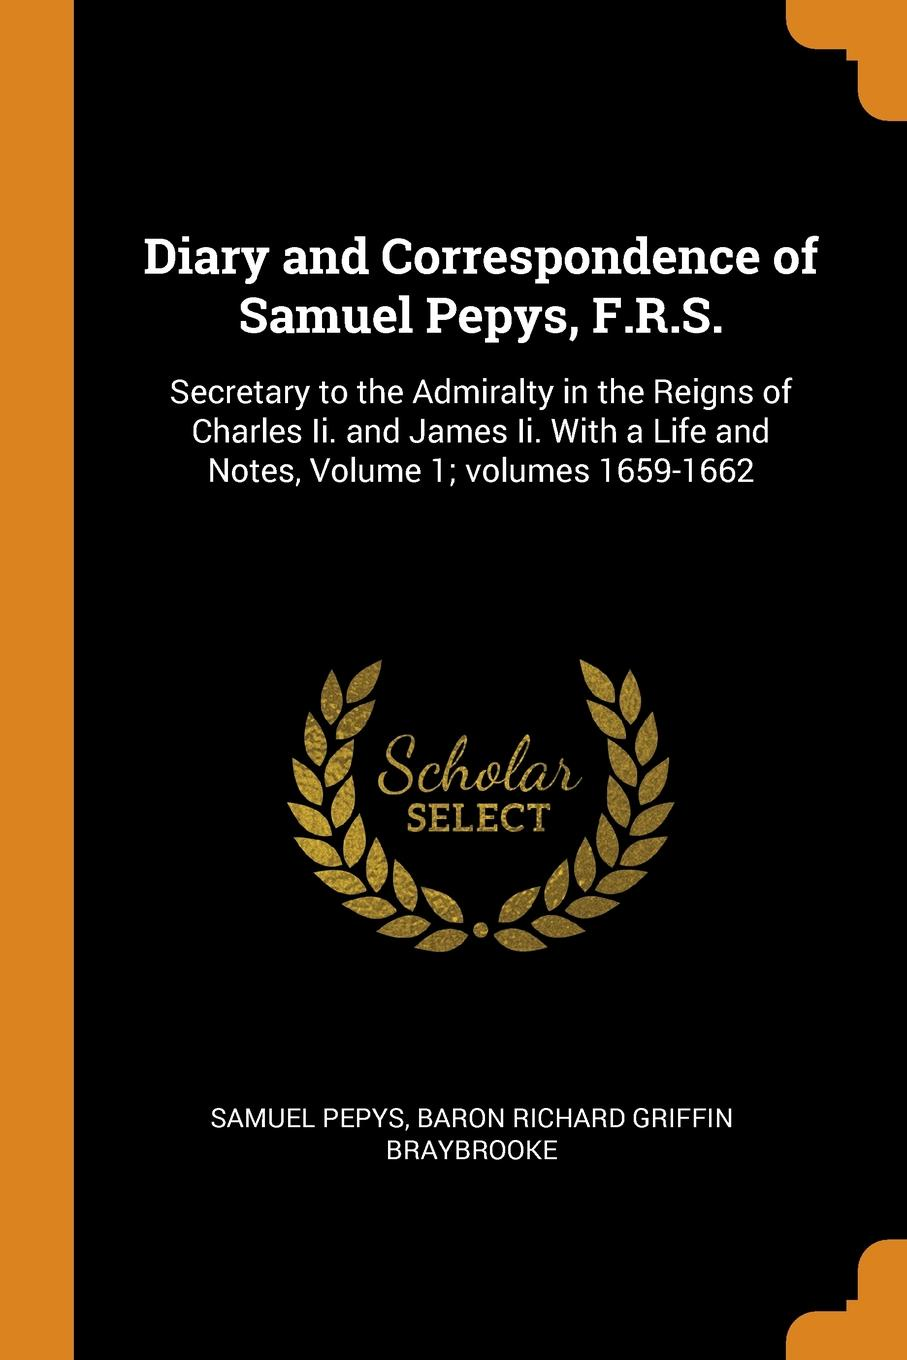 Diary and Correspondence of Samuel Pepys, F.R.S. Secretary to the Admiralty in the Reigns of Charles Ii. and James Ii. With a Life and Notes, Volume 1; volumes 1659-1662